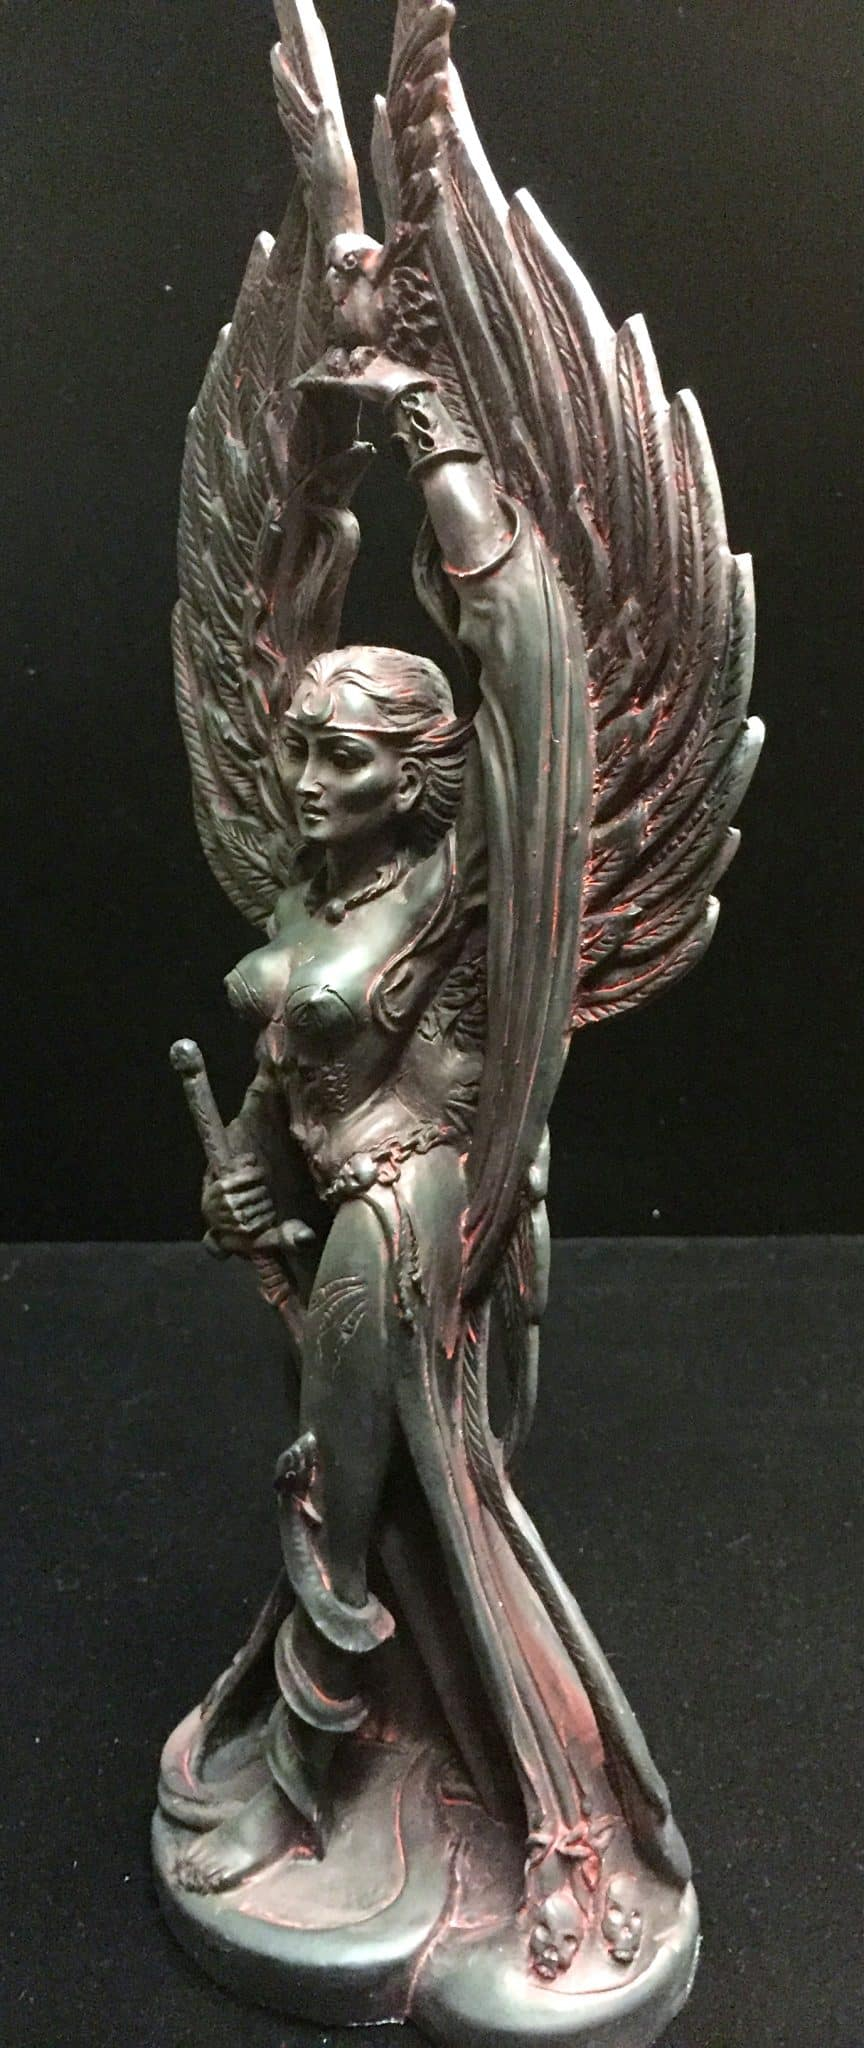 Celtic Goddess of Death and War Morrigan Statue by Maxine Miller ©celticjackalope.com 2